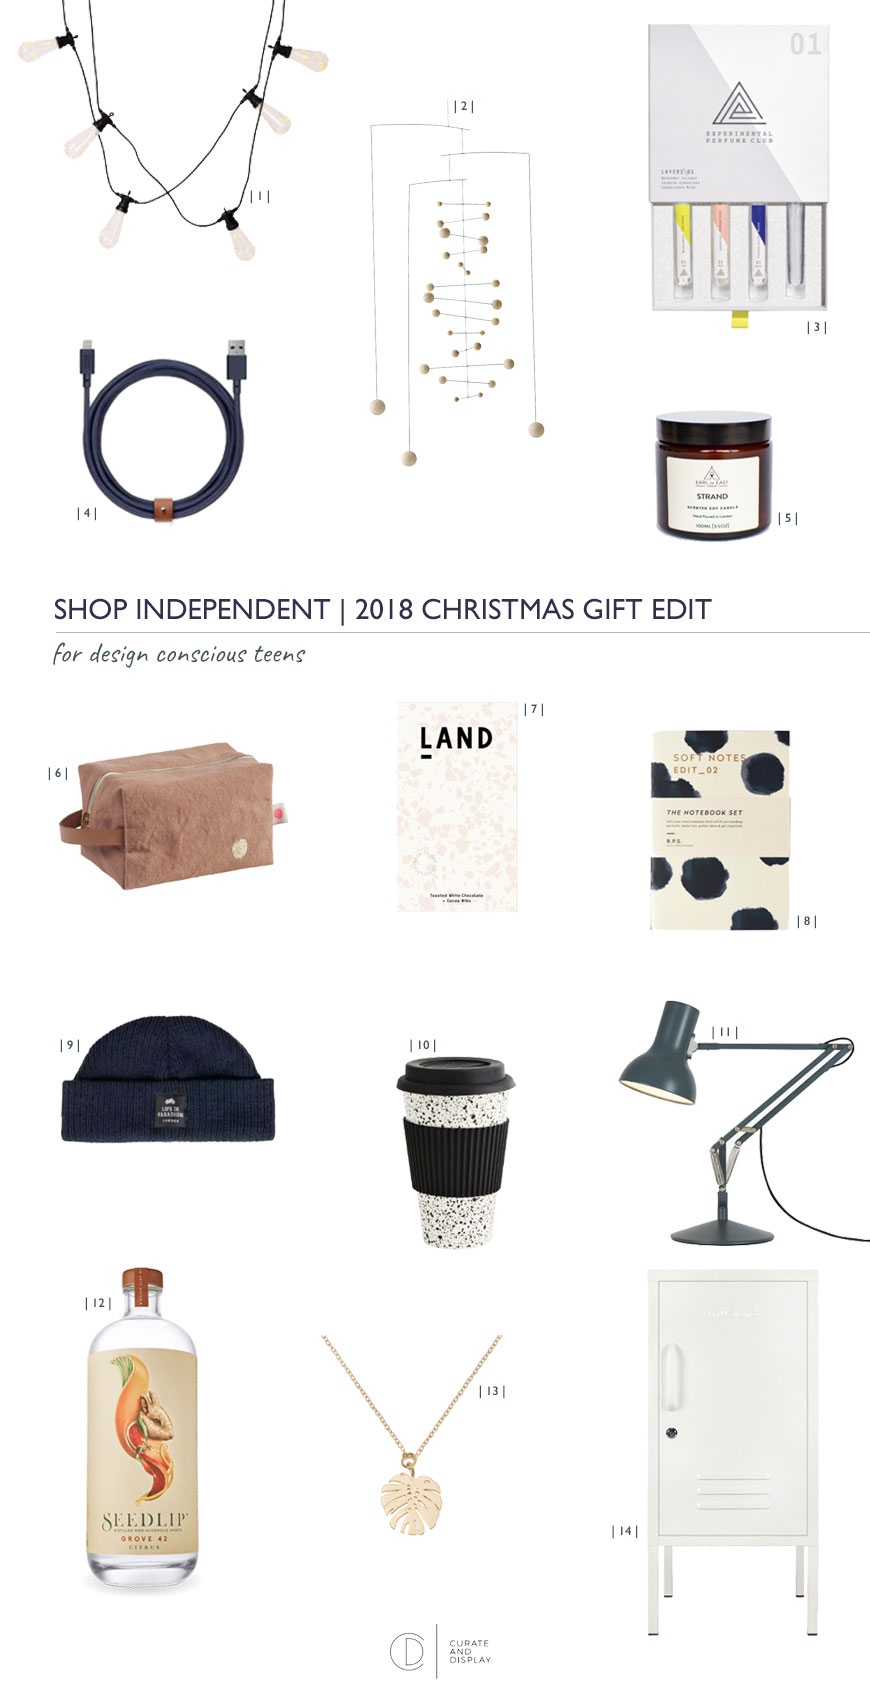 shop independent and support small shops in this Christmas gift guide for teens who are design conscious